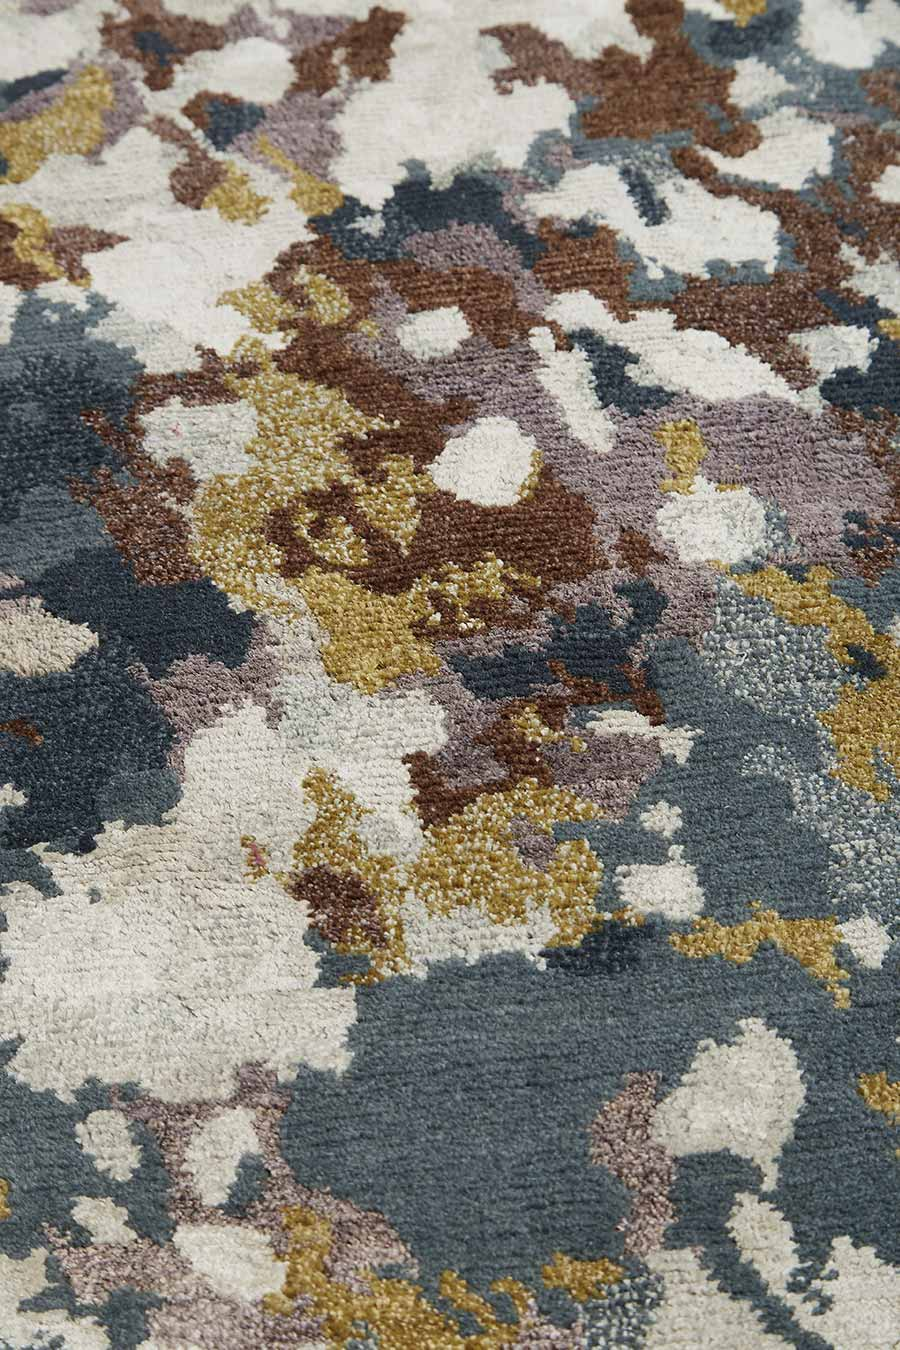 Detailed image of painterly Moss rug by Hare + Klein